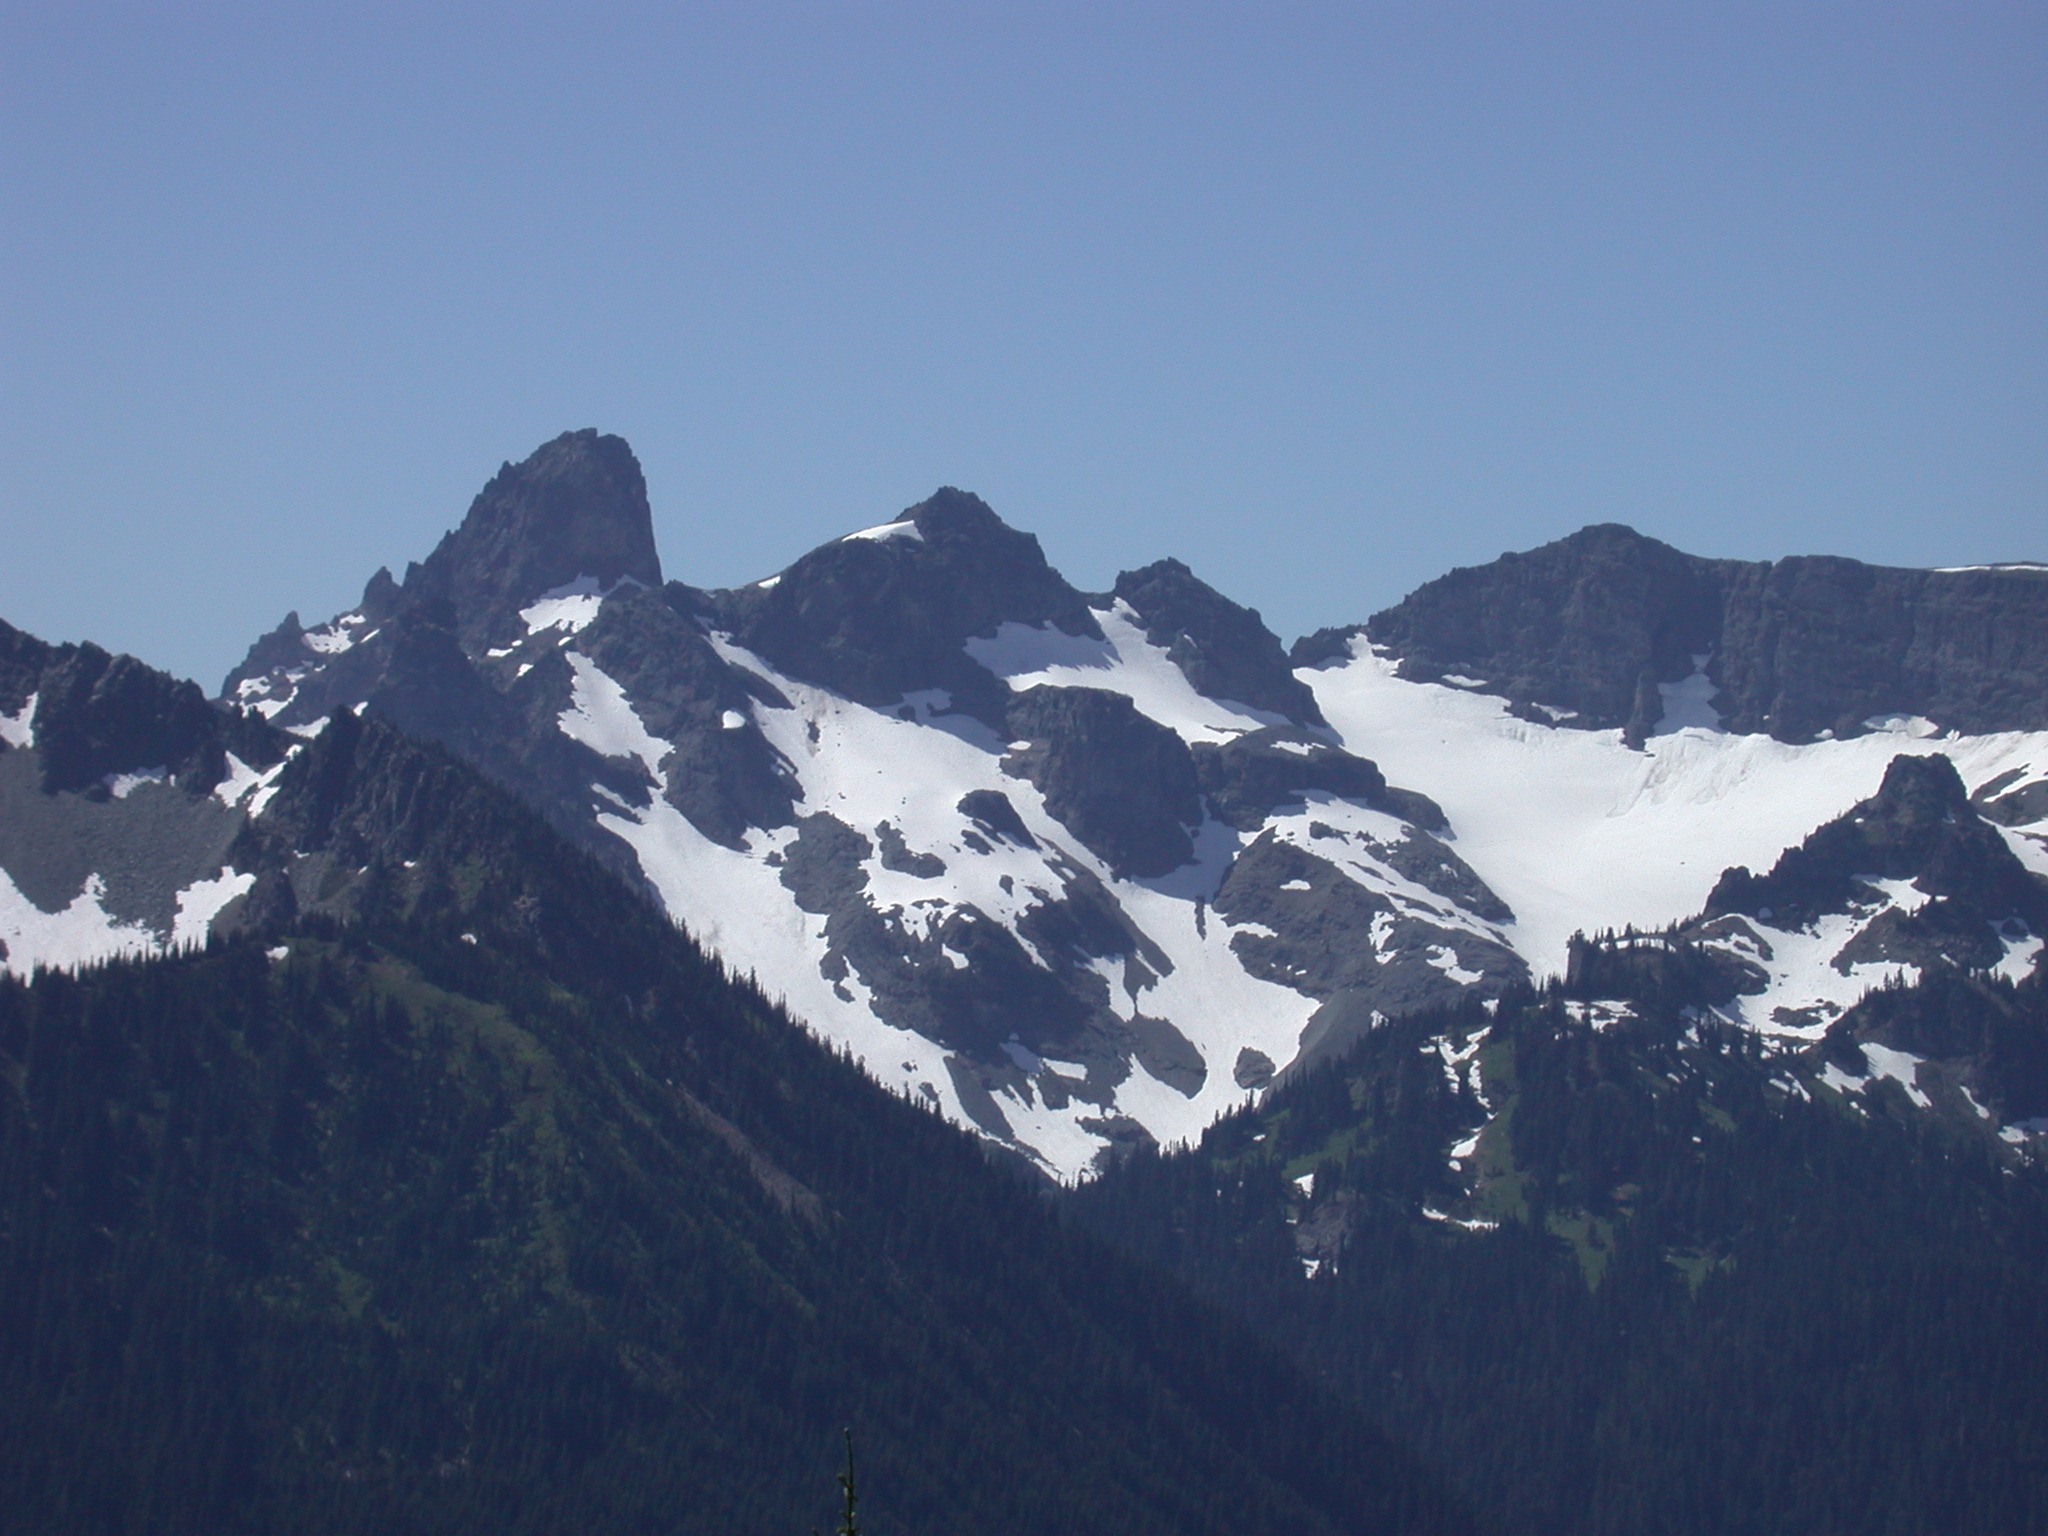 More Snowy Peaks Near Mount Rainier